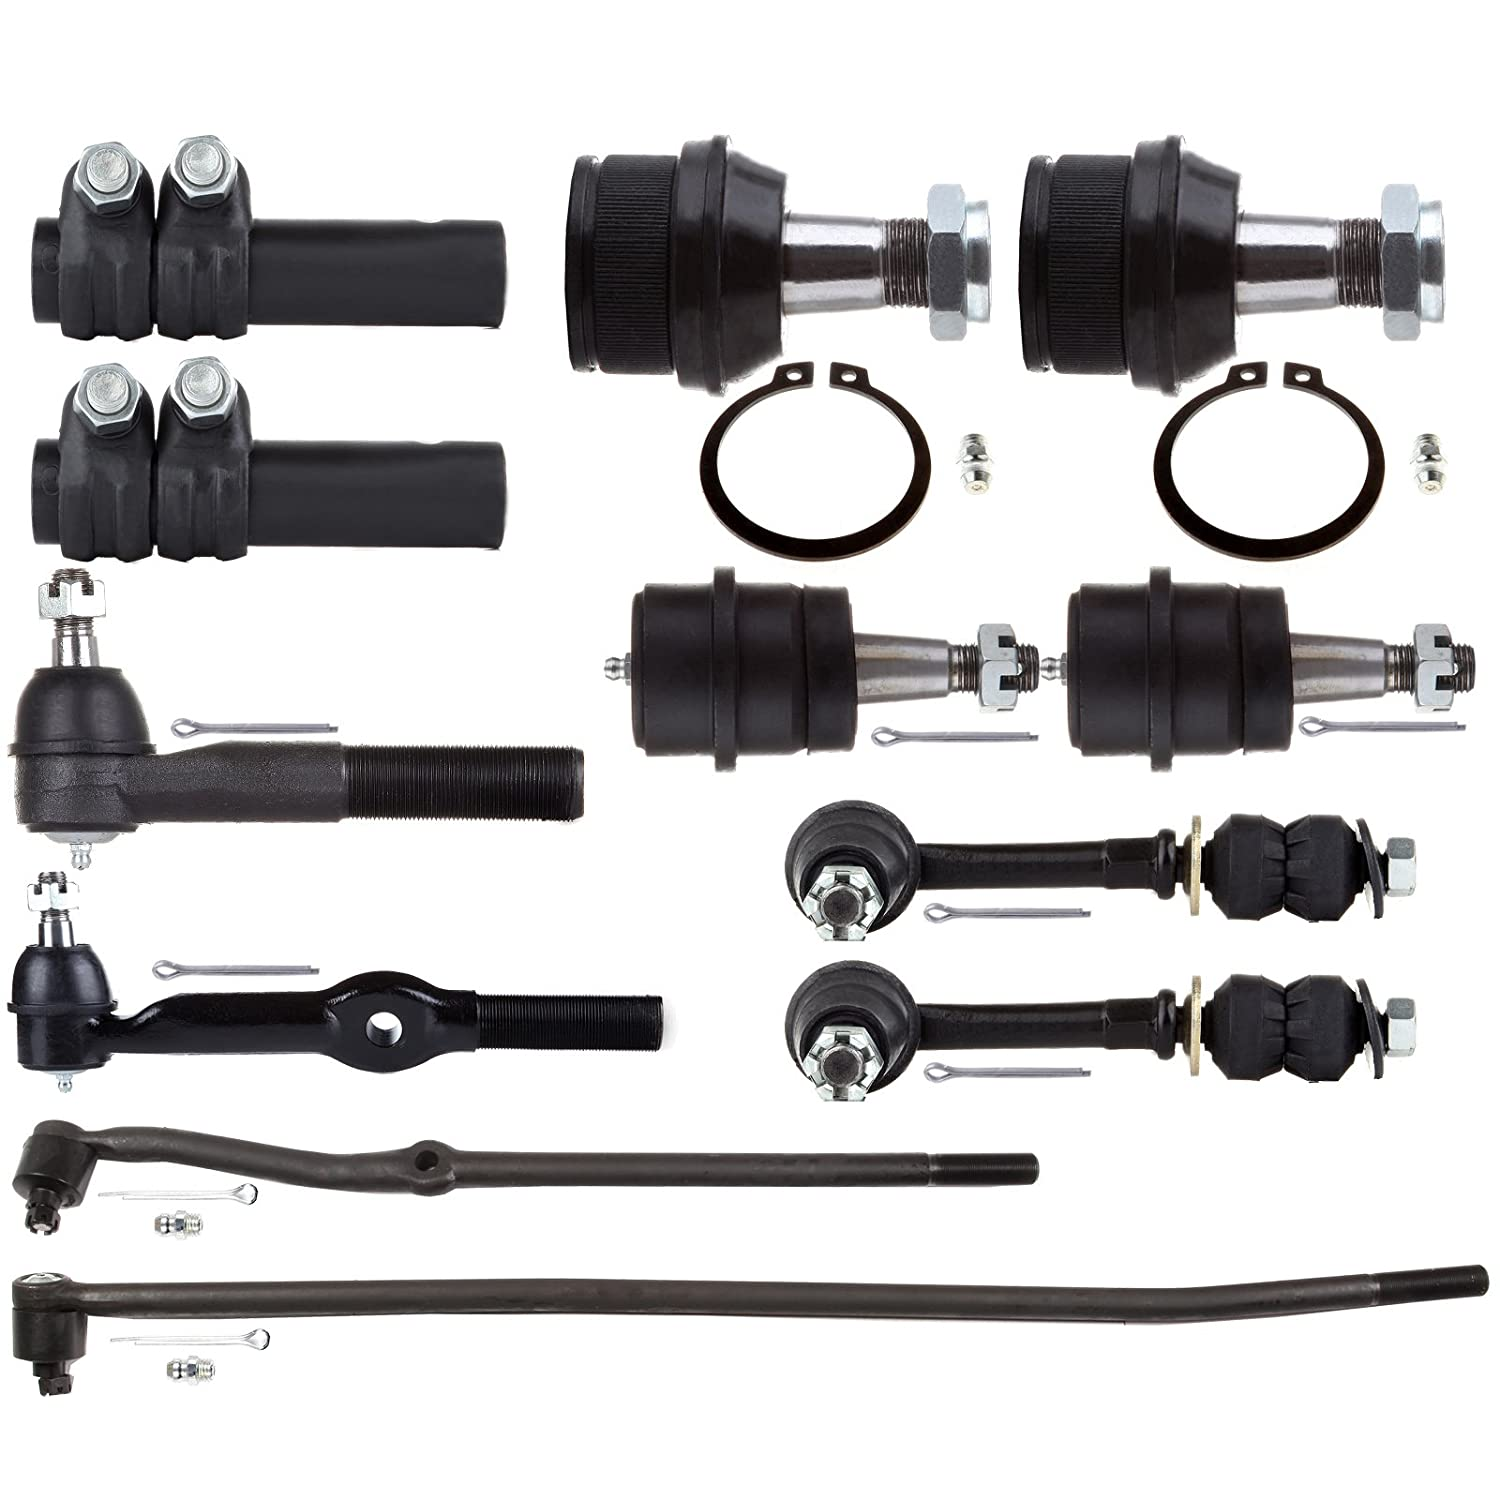 ECCPP Front Upper Lower Ball Joint Inner Outer Tie Rod Adjusting Sleeve Sway Bar Link for 1995-1997 Dodge Ram 1500 2500 4WD 12pcs K3134T K8195T